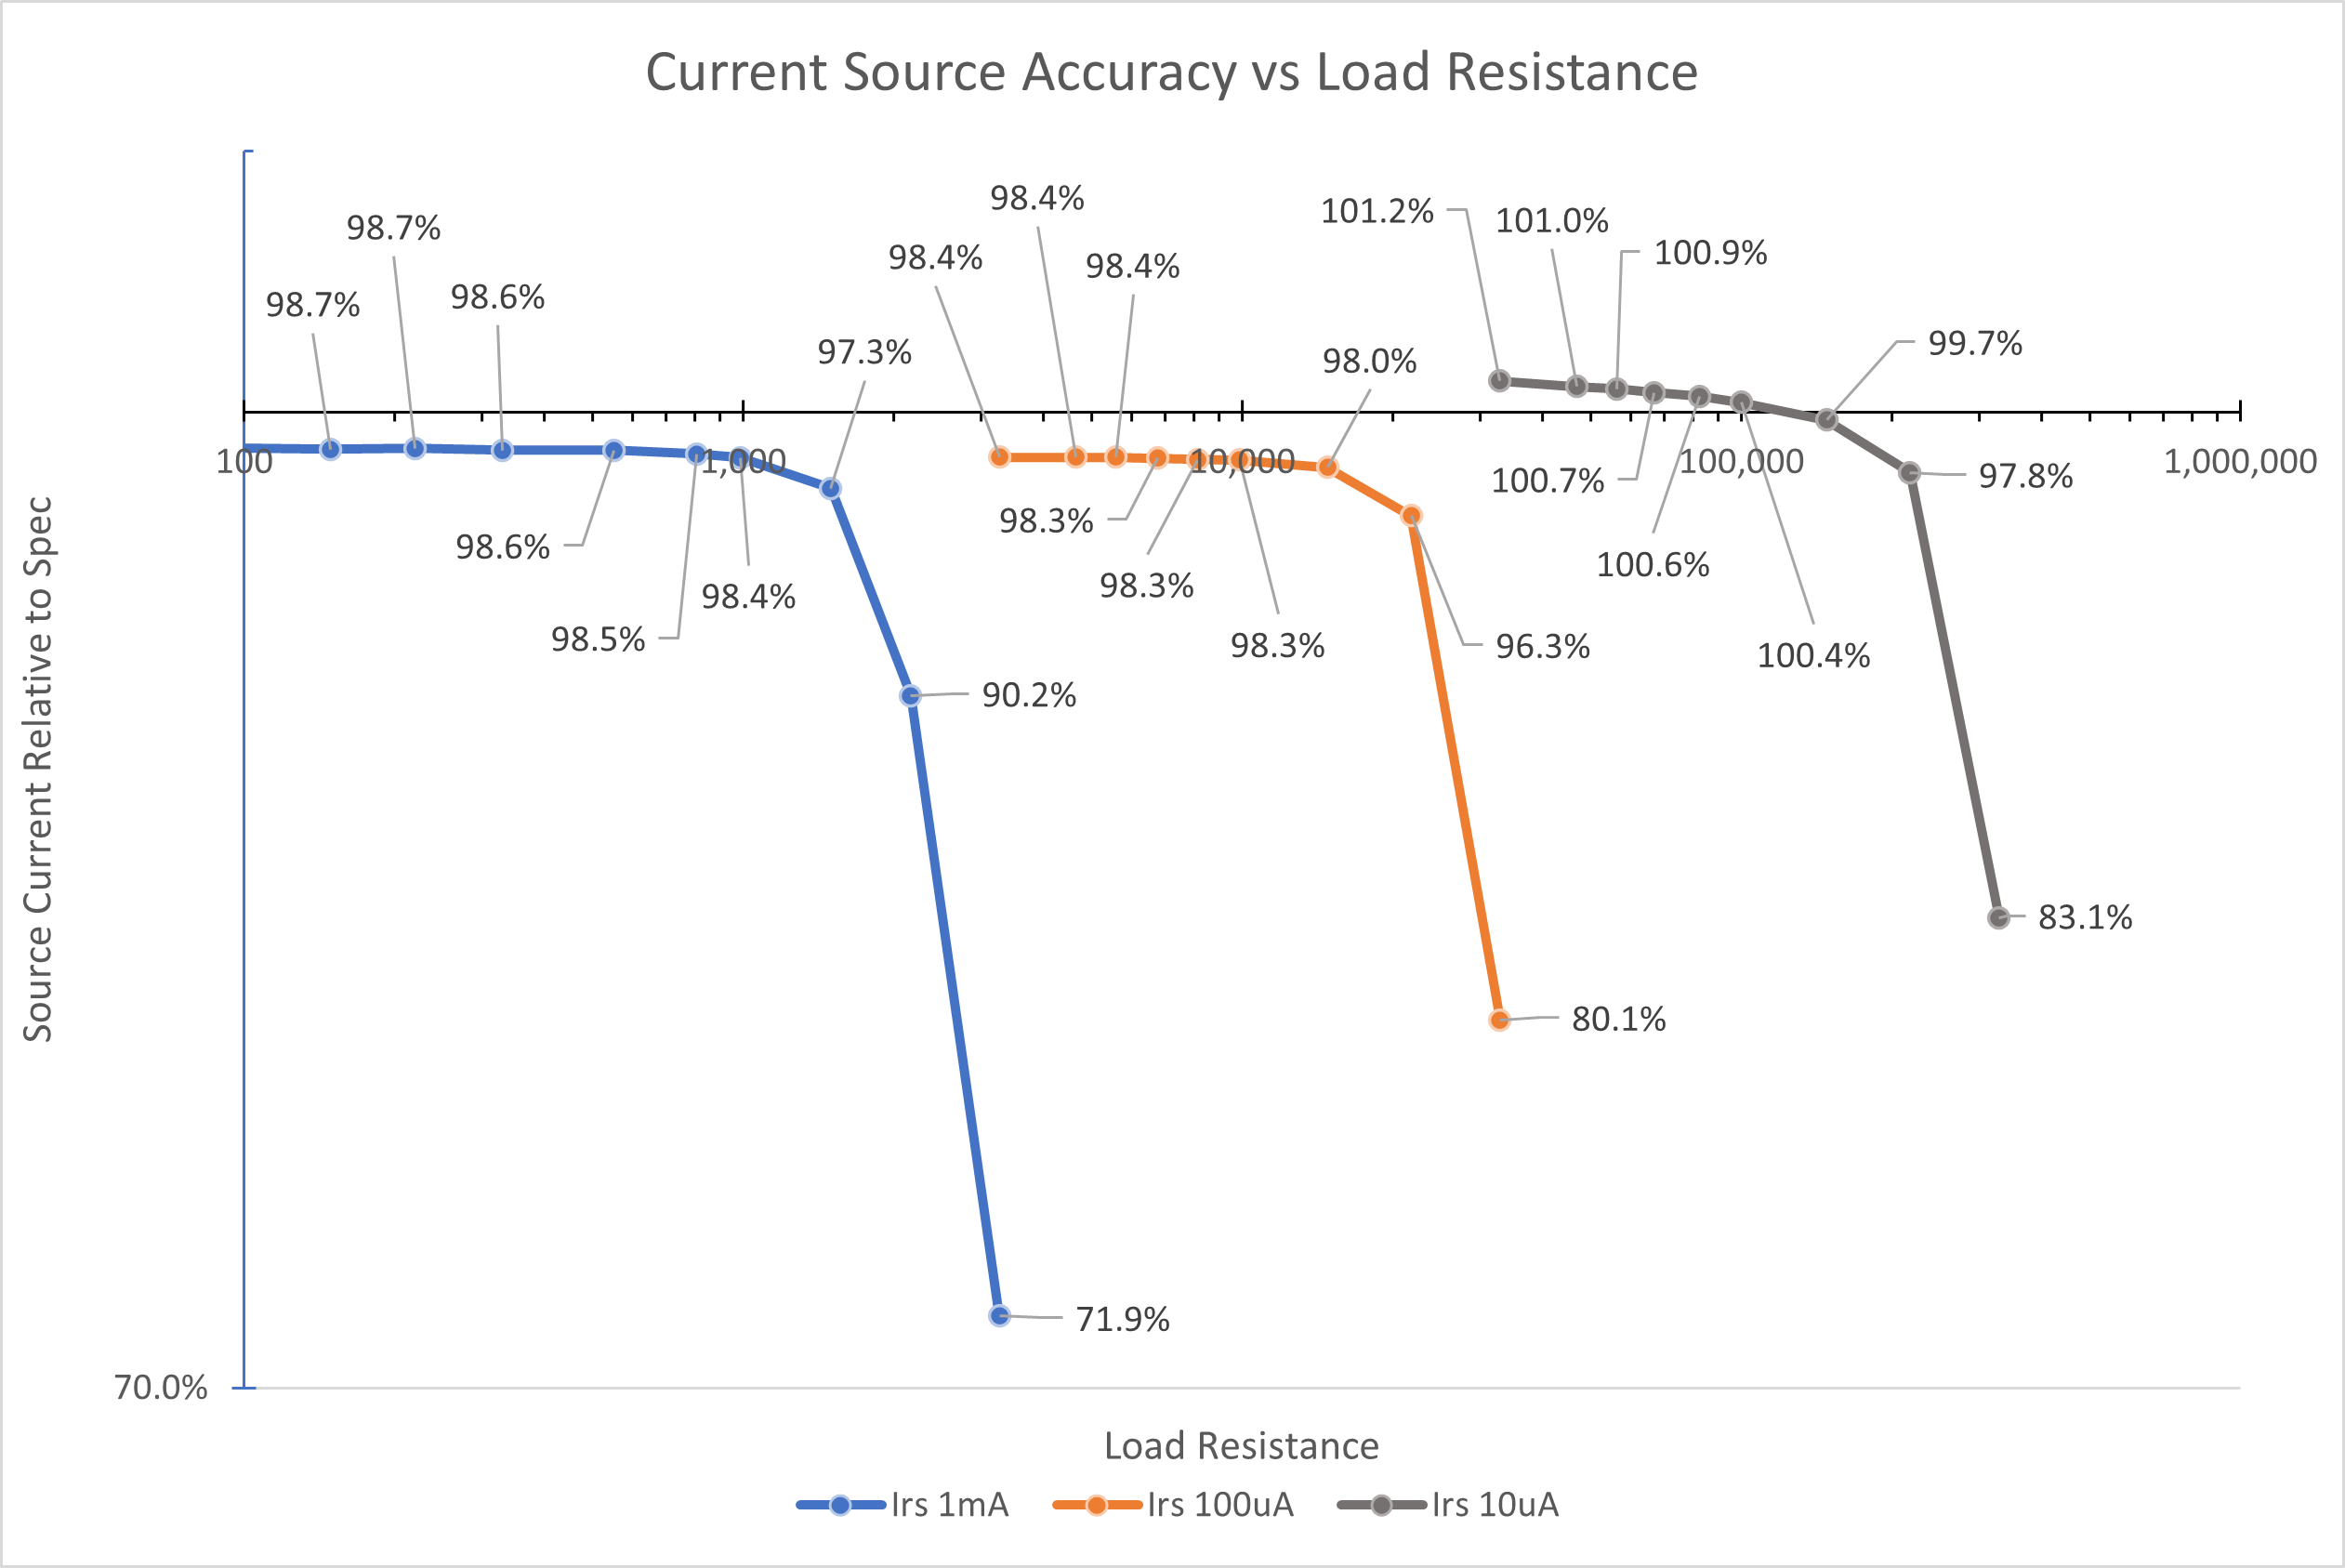 Current Source Accuracy vs Load Resistance